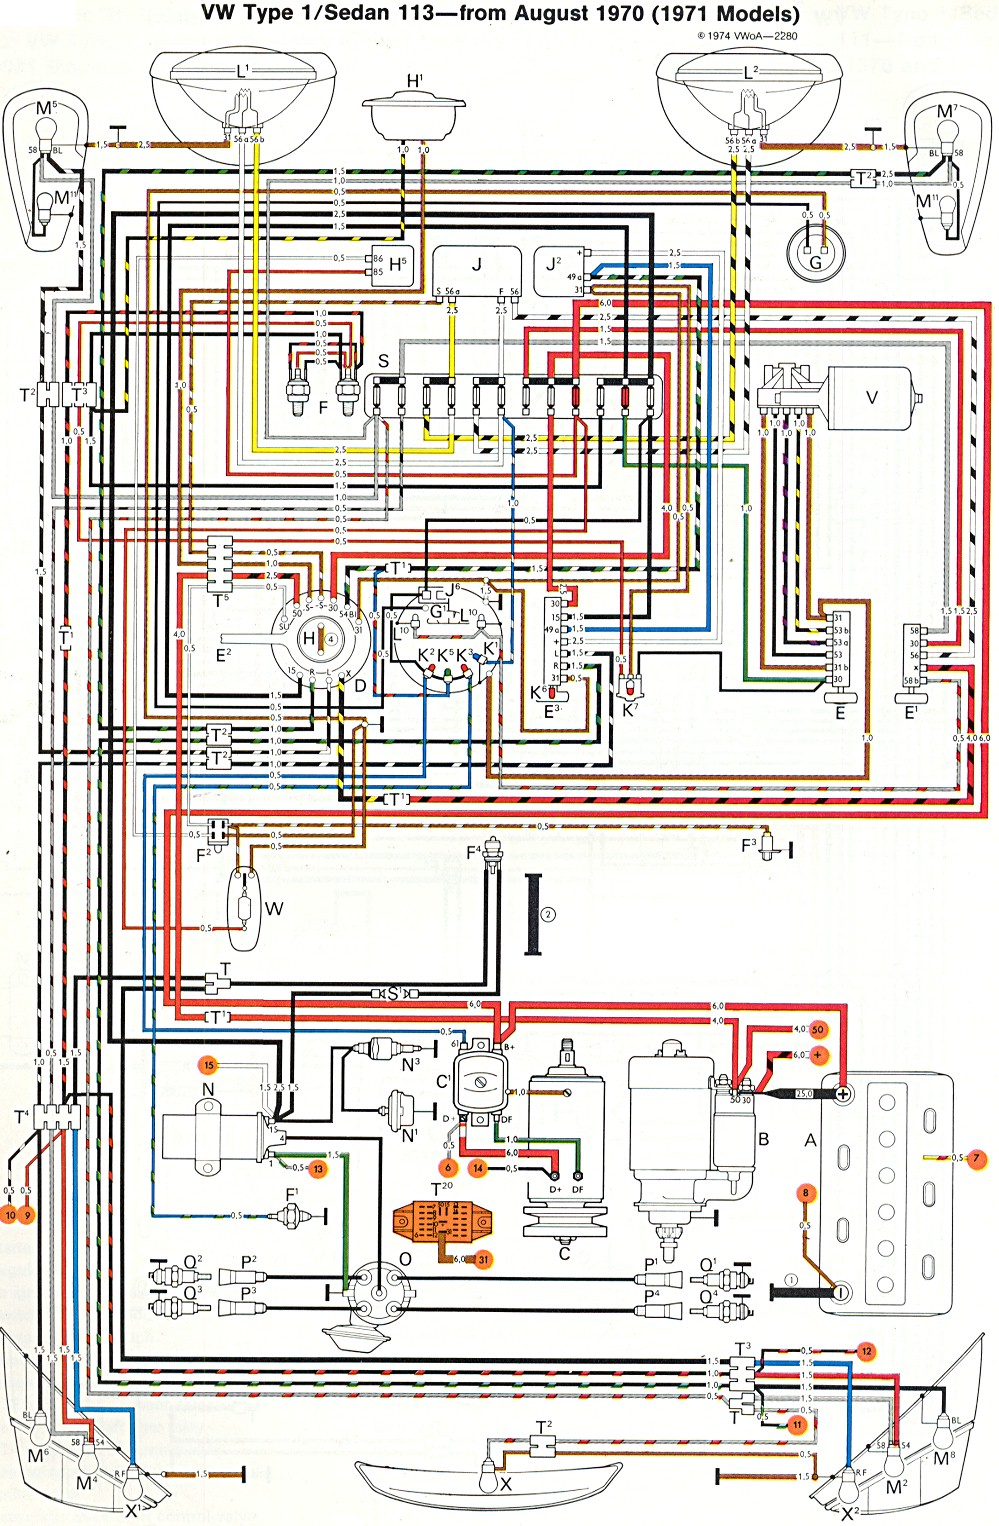 1971 Beetle Wiring Diagram Just Wiring Diagram Schematic Super VW Beetle  Baha 74 Super Beetle Wiring Harness